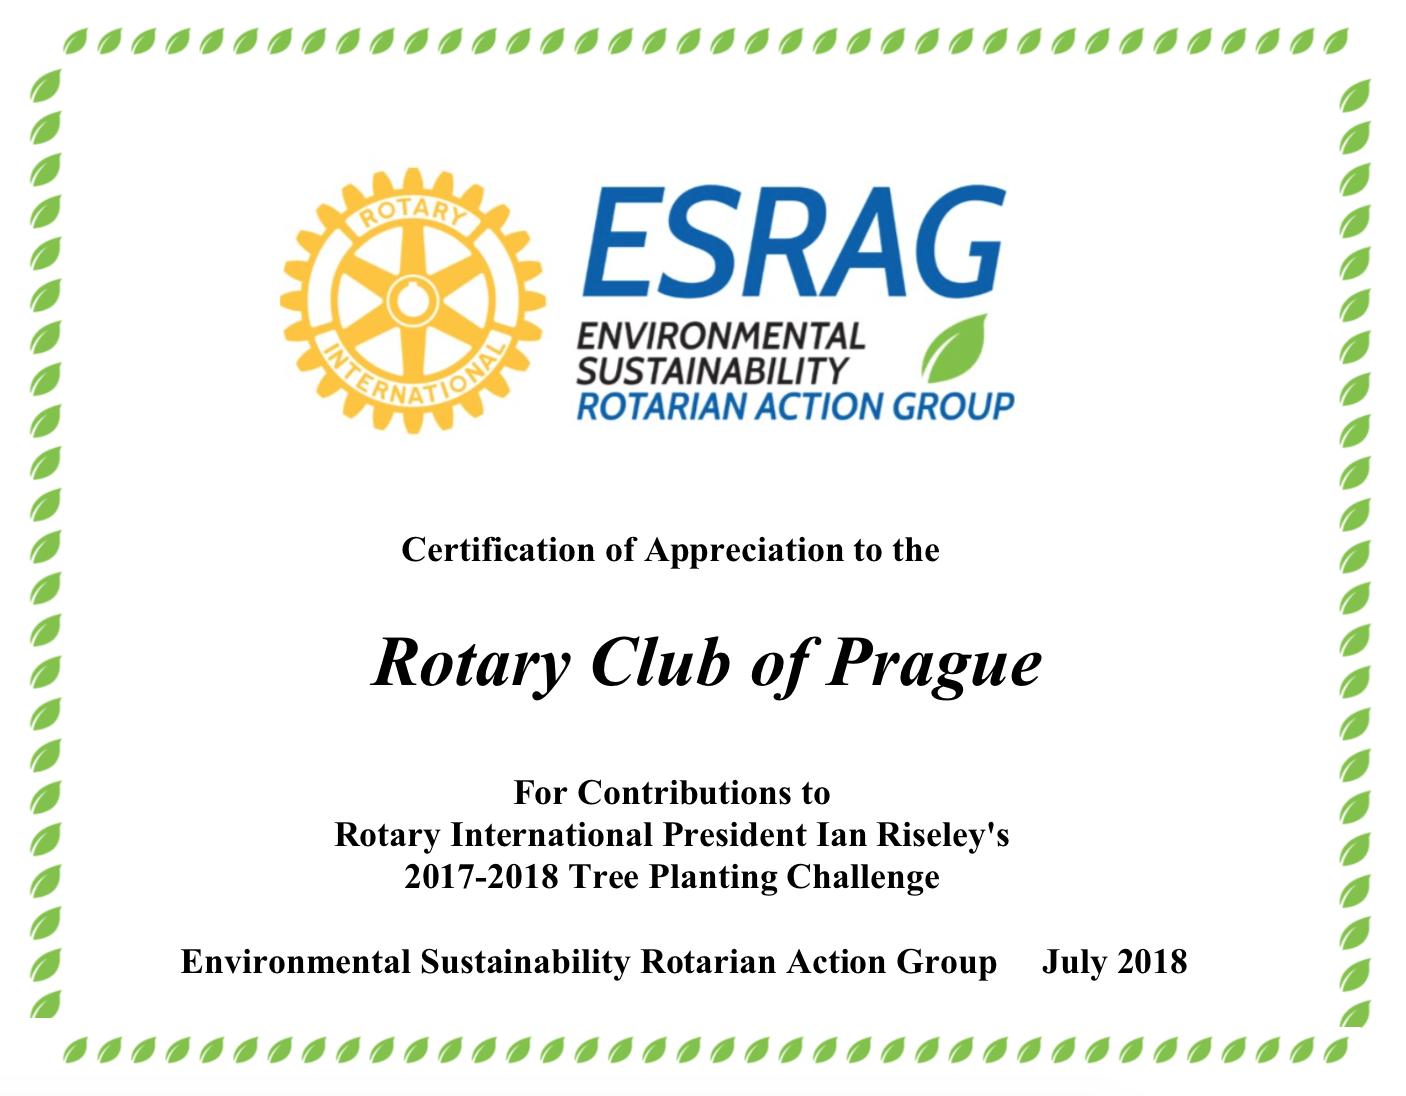 rotary certificate of appreciation template new sle.html